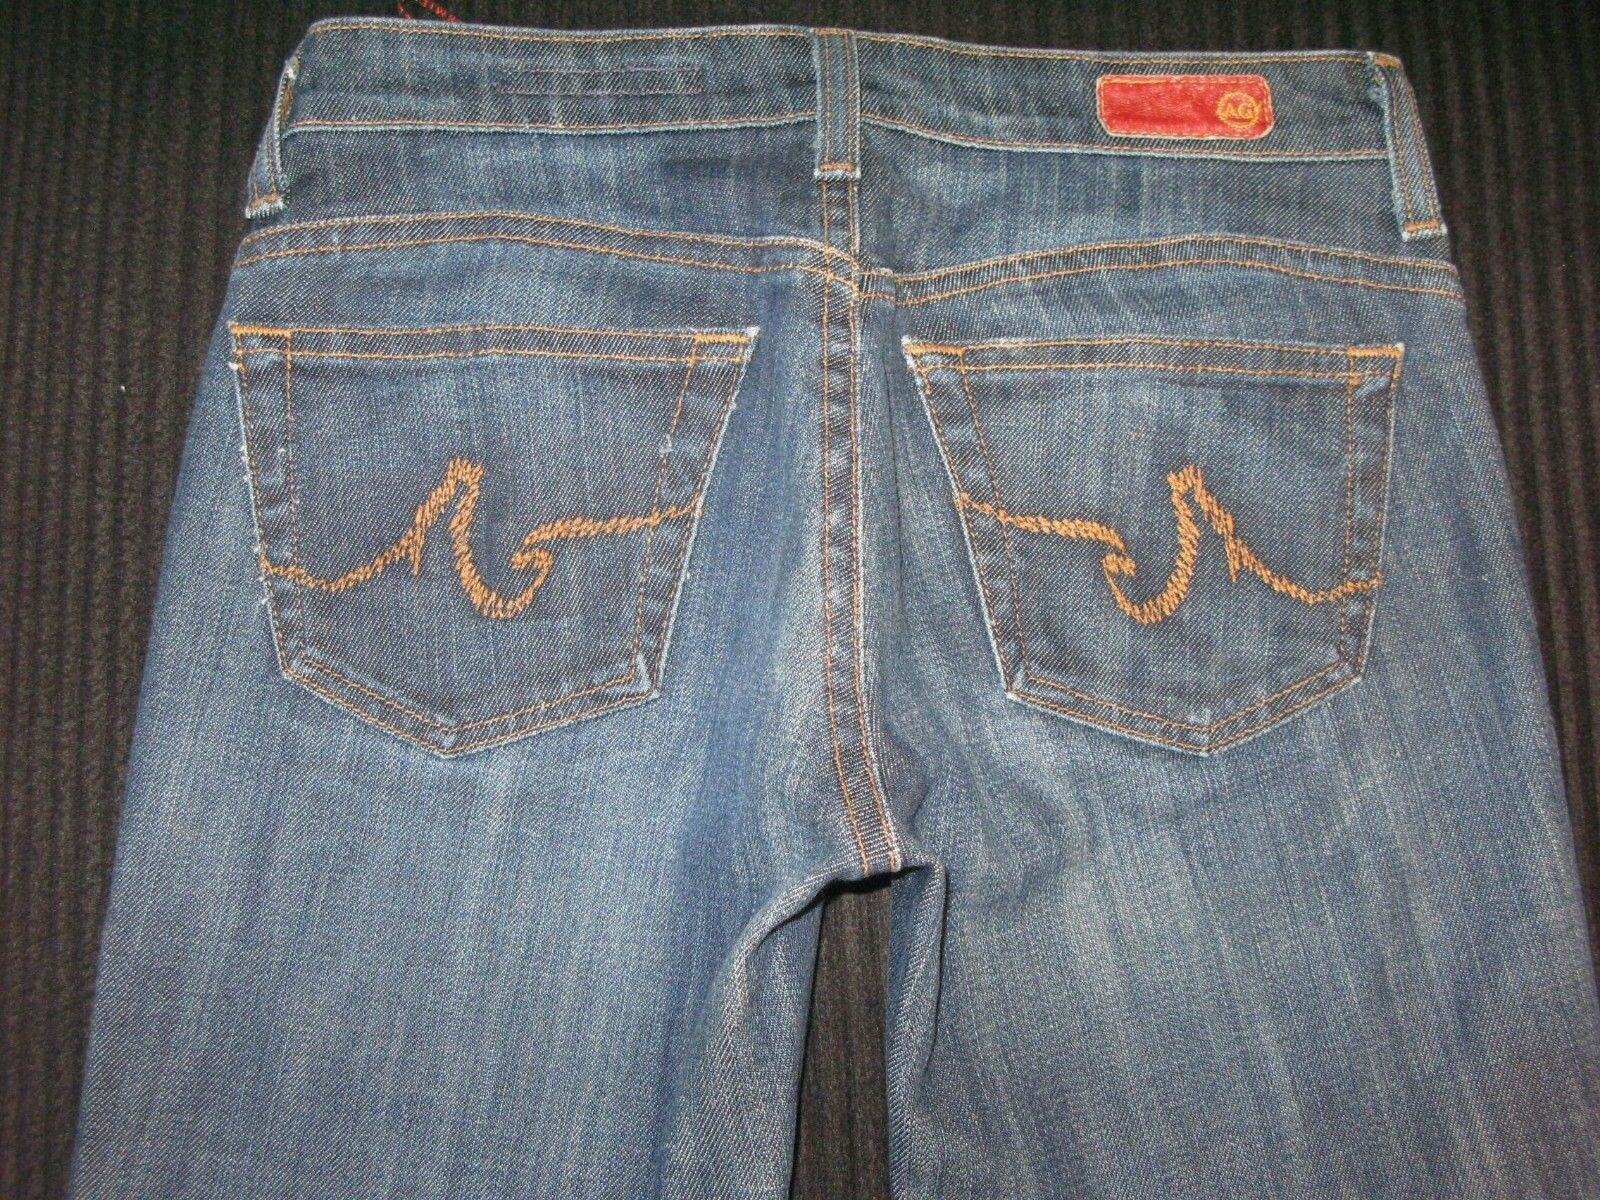 AG ADRIANO goldSCHMIED The New Legend Jeans Sz 25 Low Flare Dark Distressed